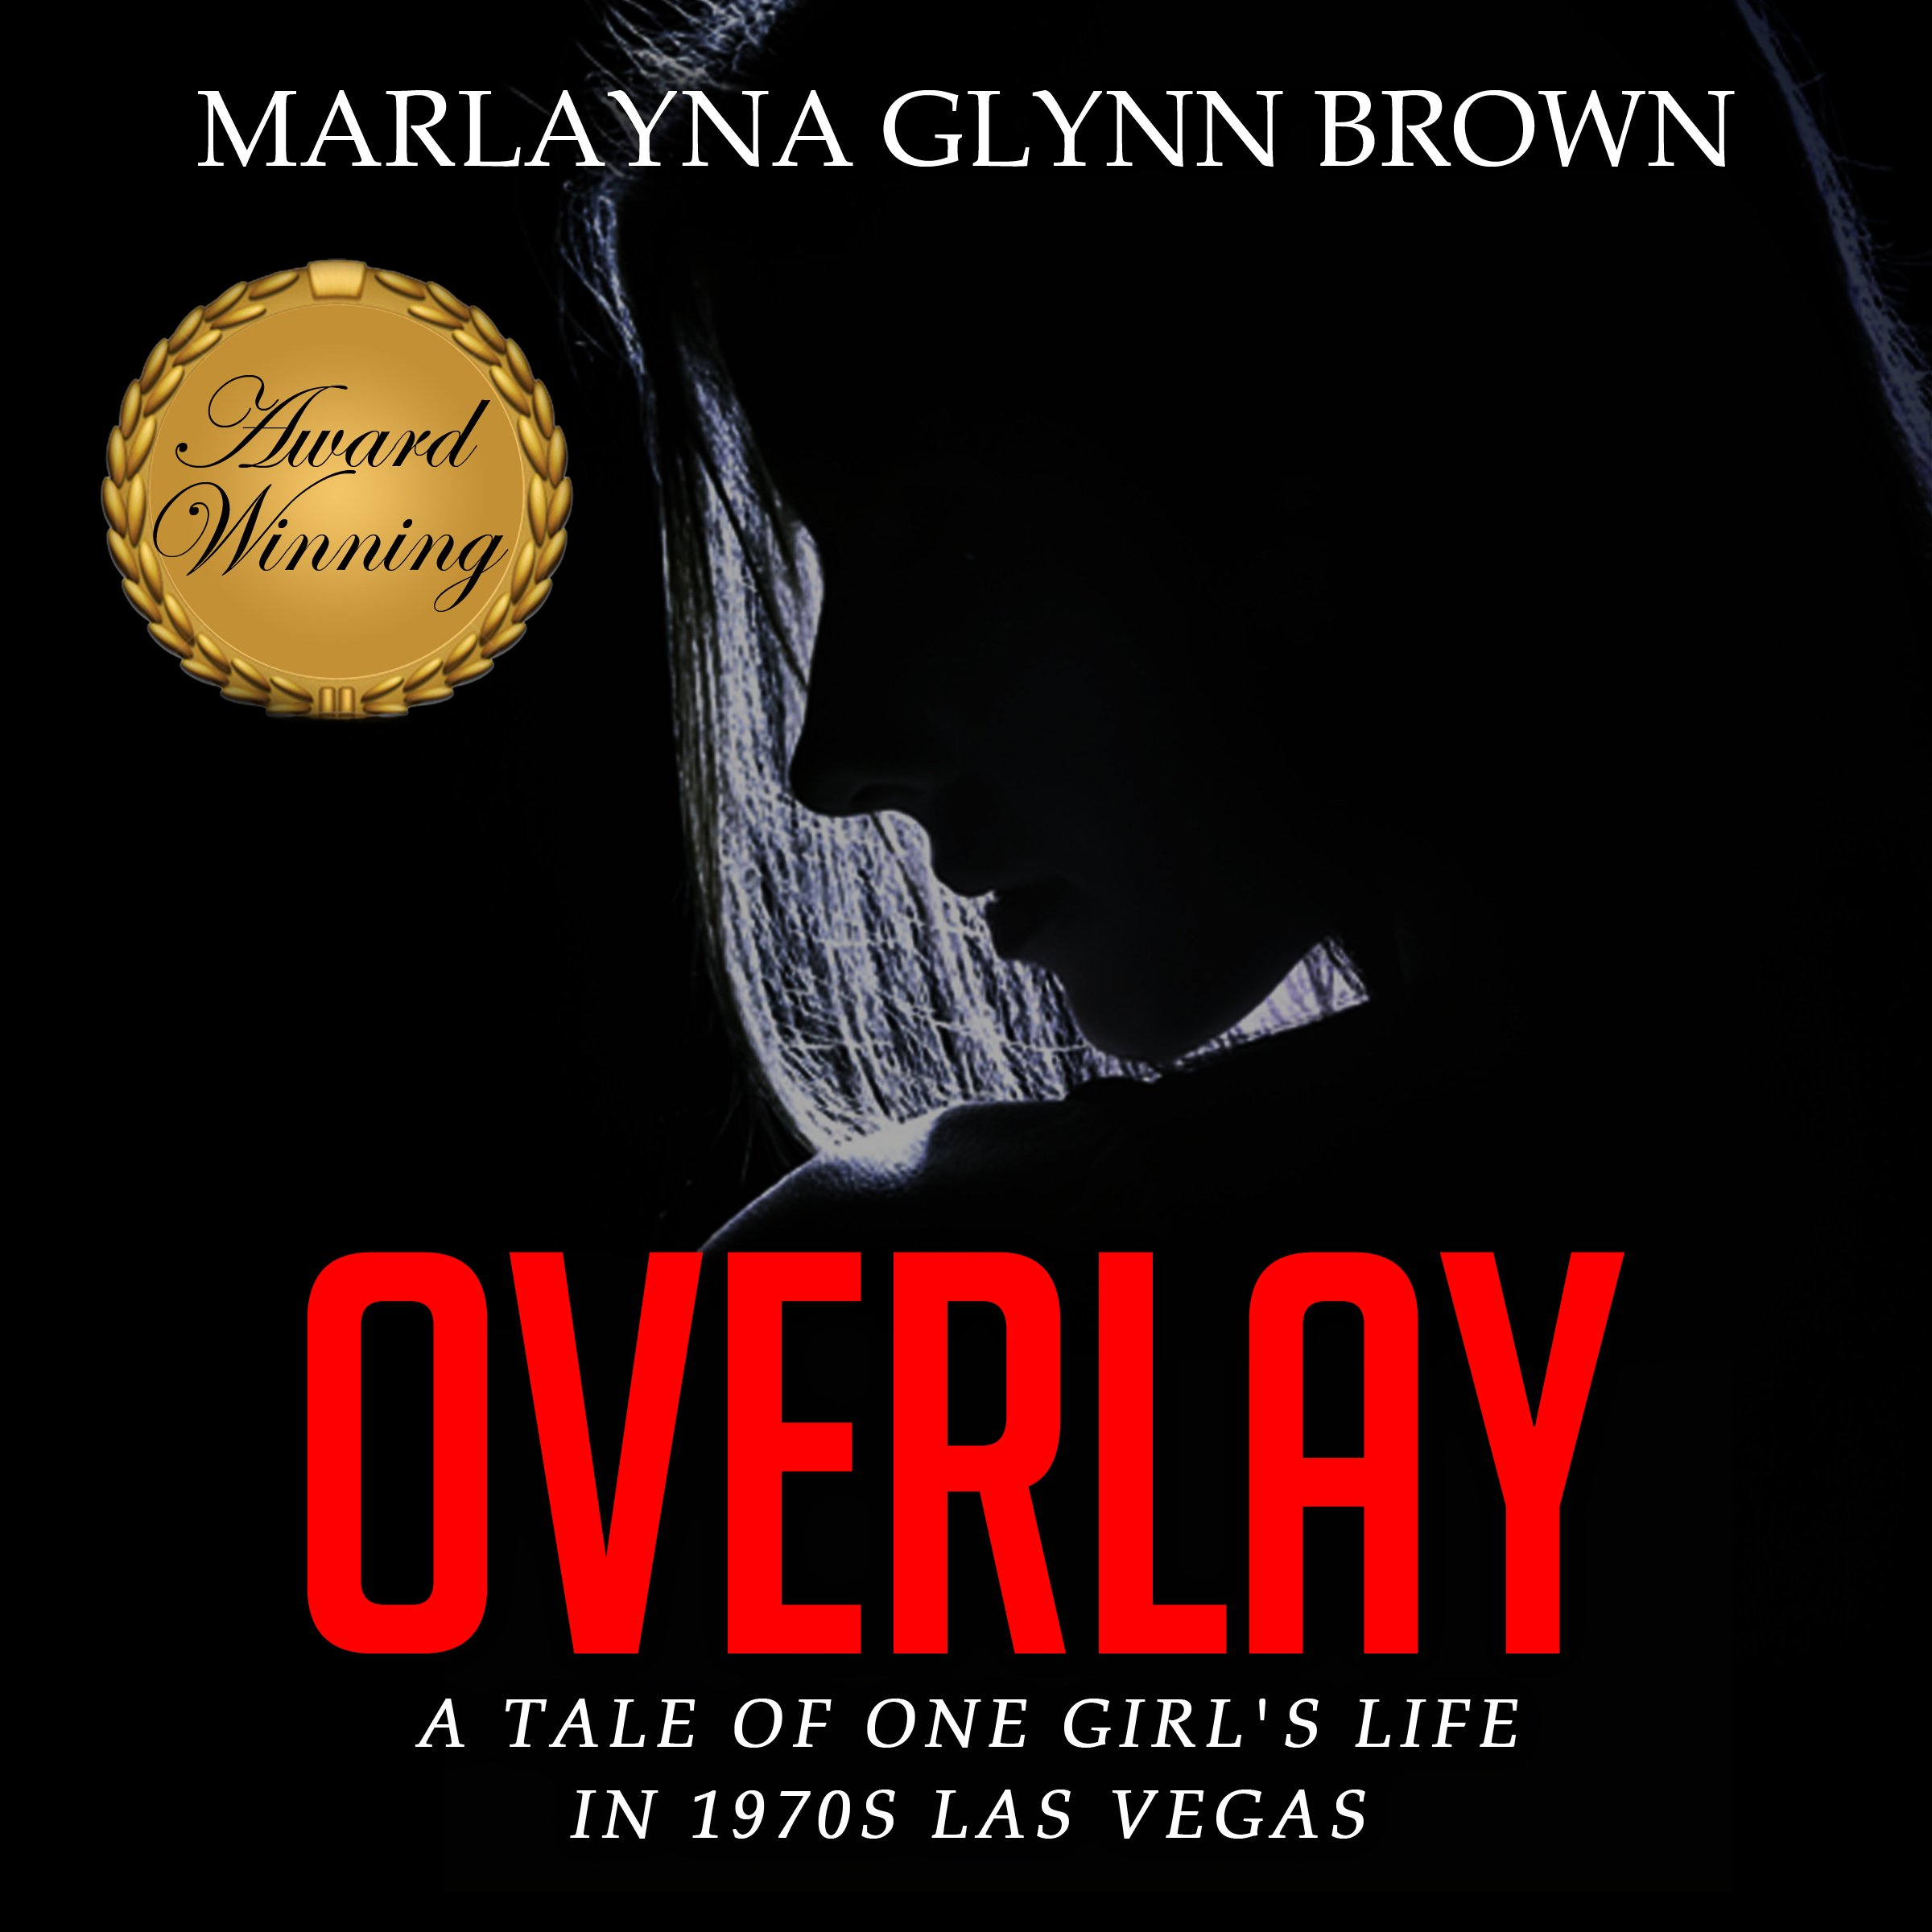 Overlay: ATale of One Girl's Life in 1970s Las Vegas